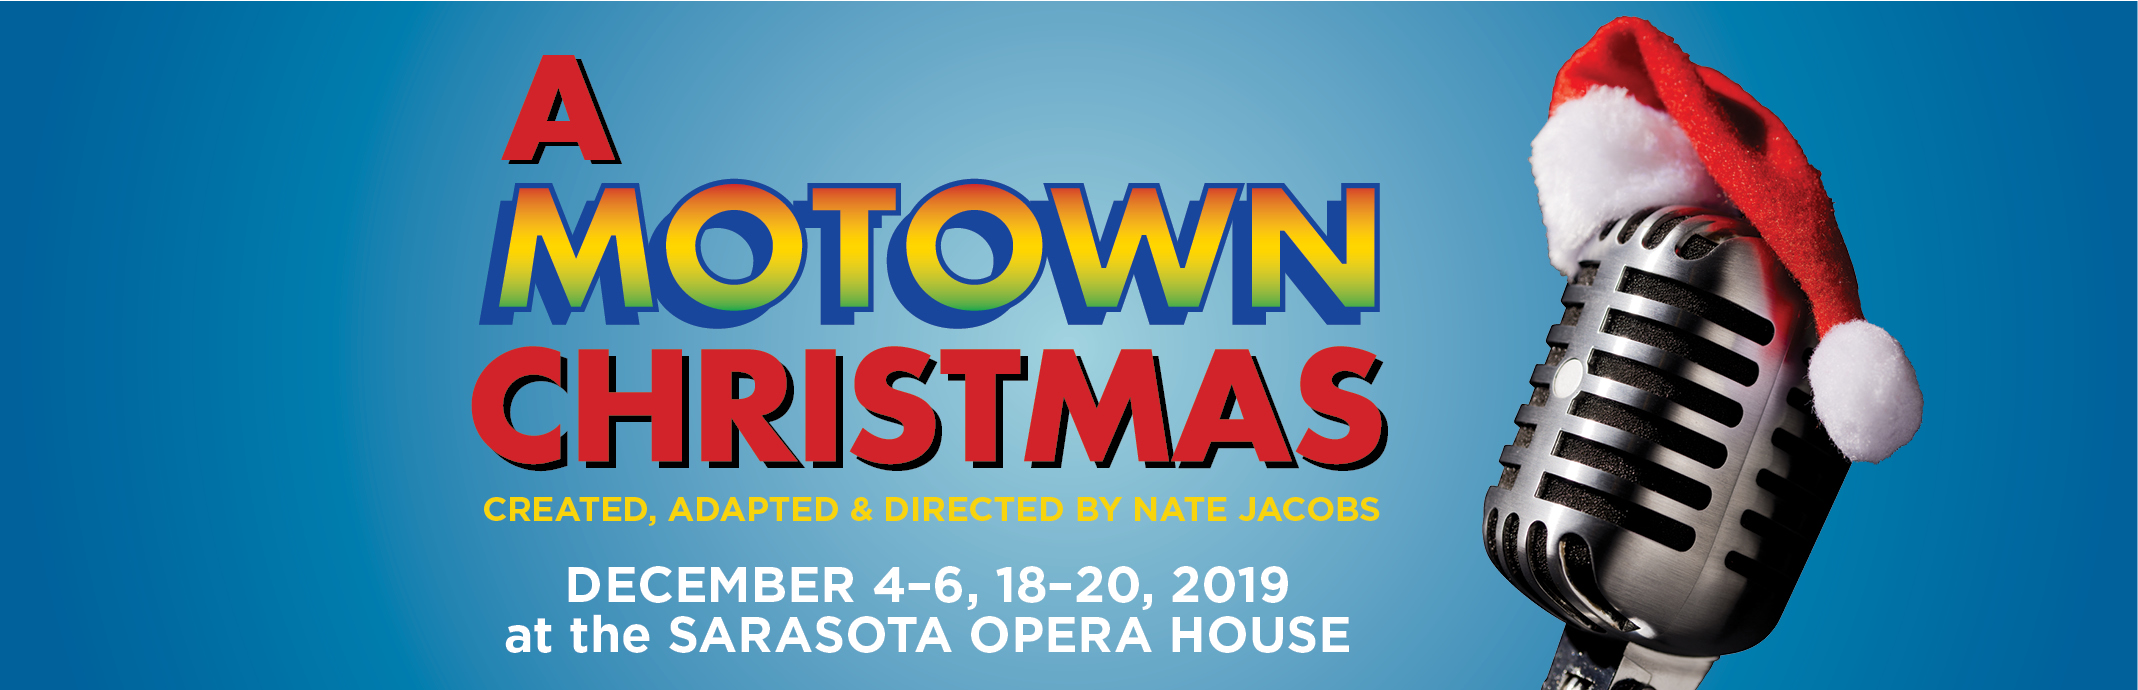 A Motown Christmas, Created, adapted and directed by Nate Jacobs, December 4-6, 18-20, 2019 at the Sarasota Opera House